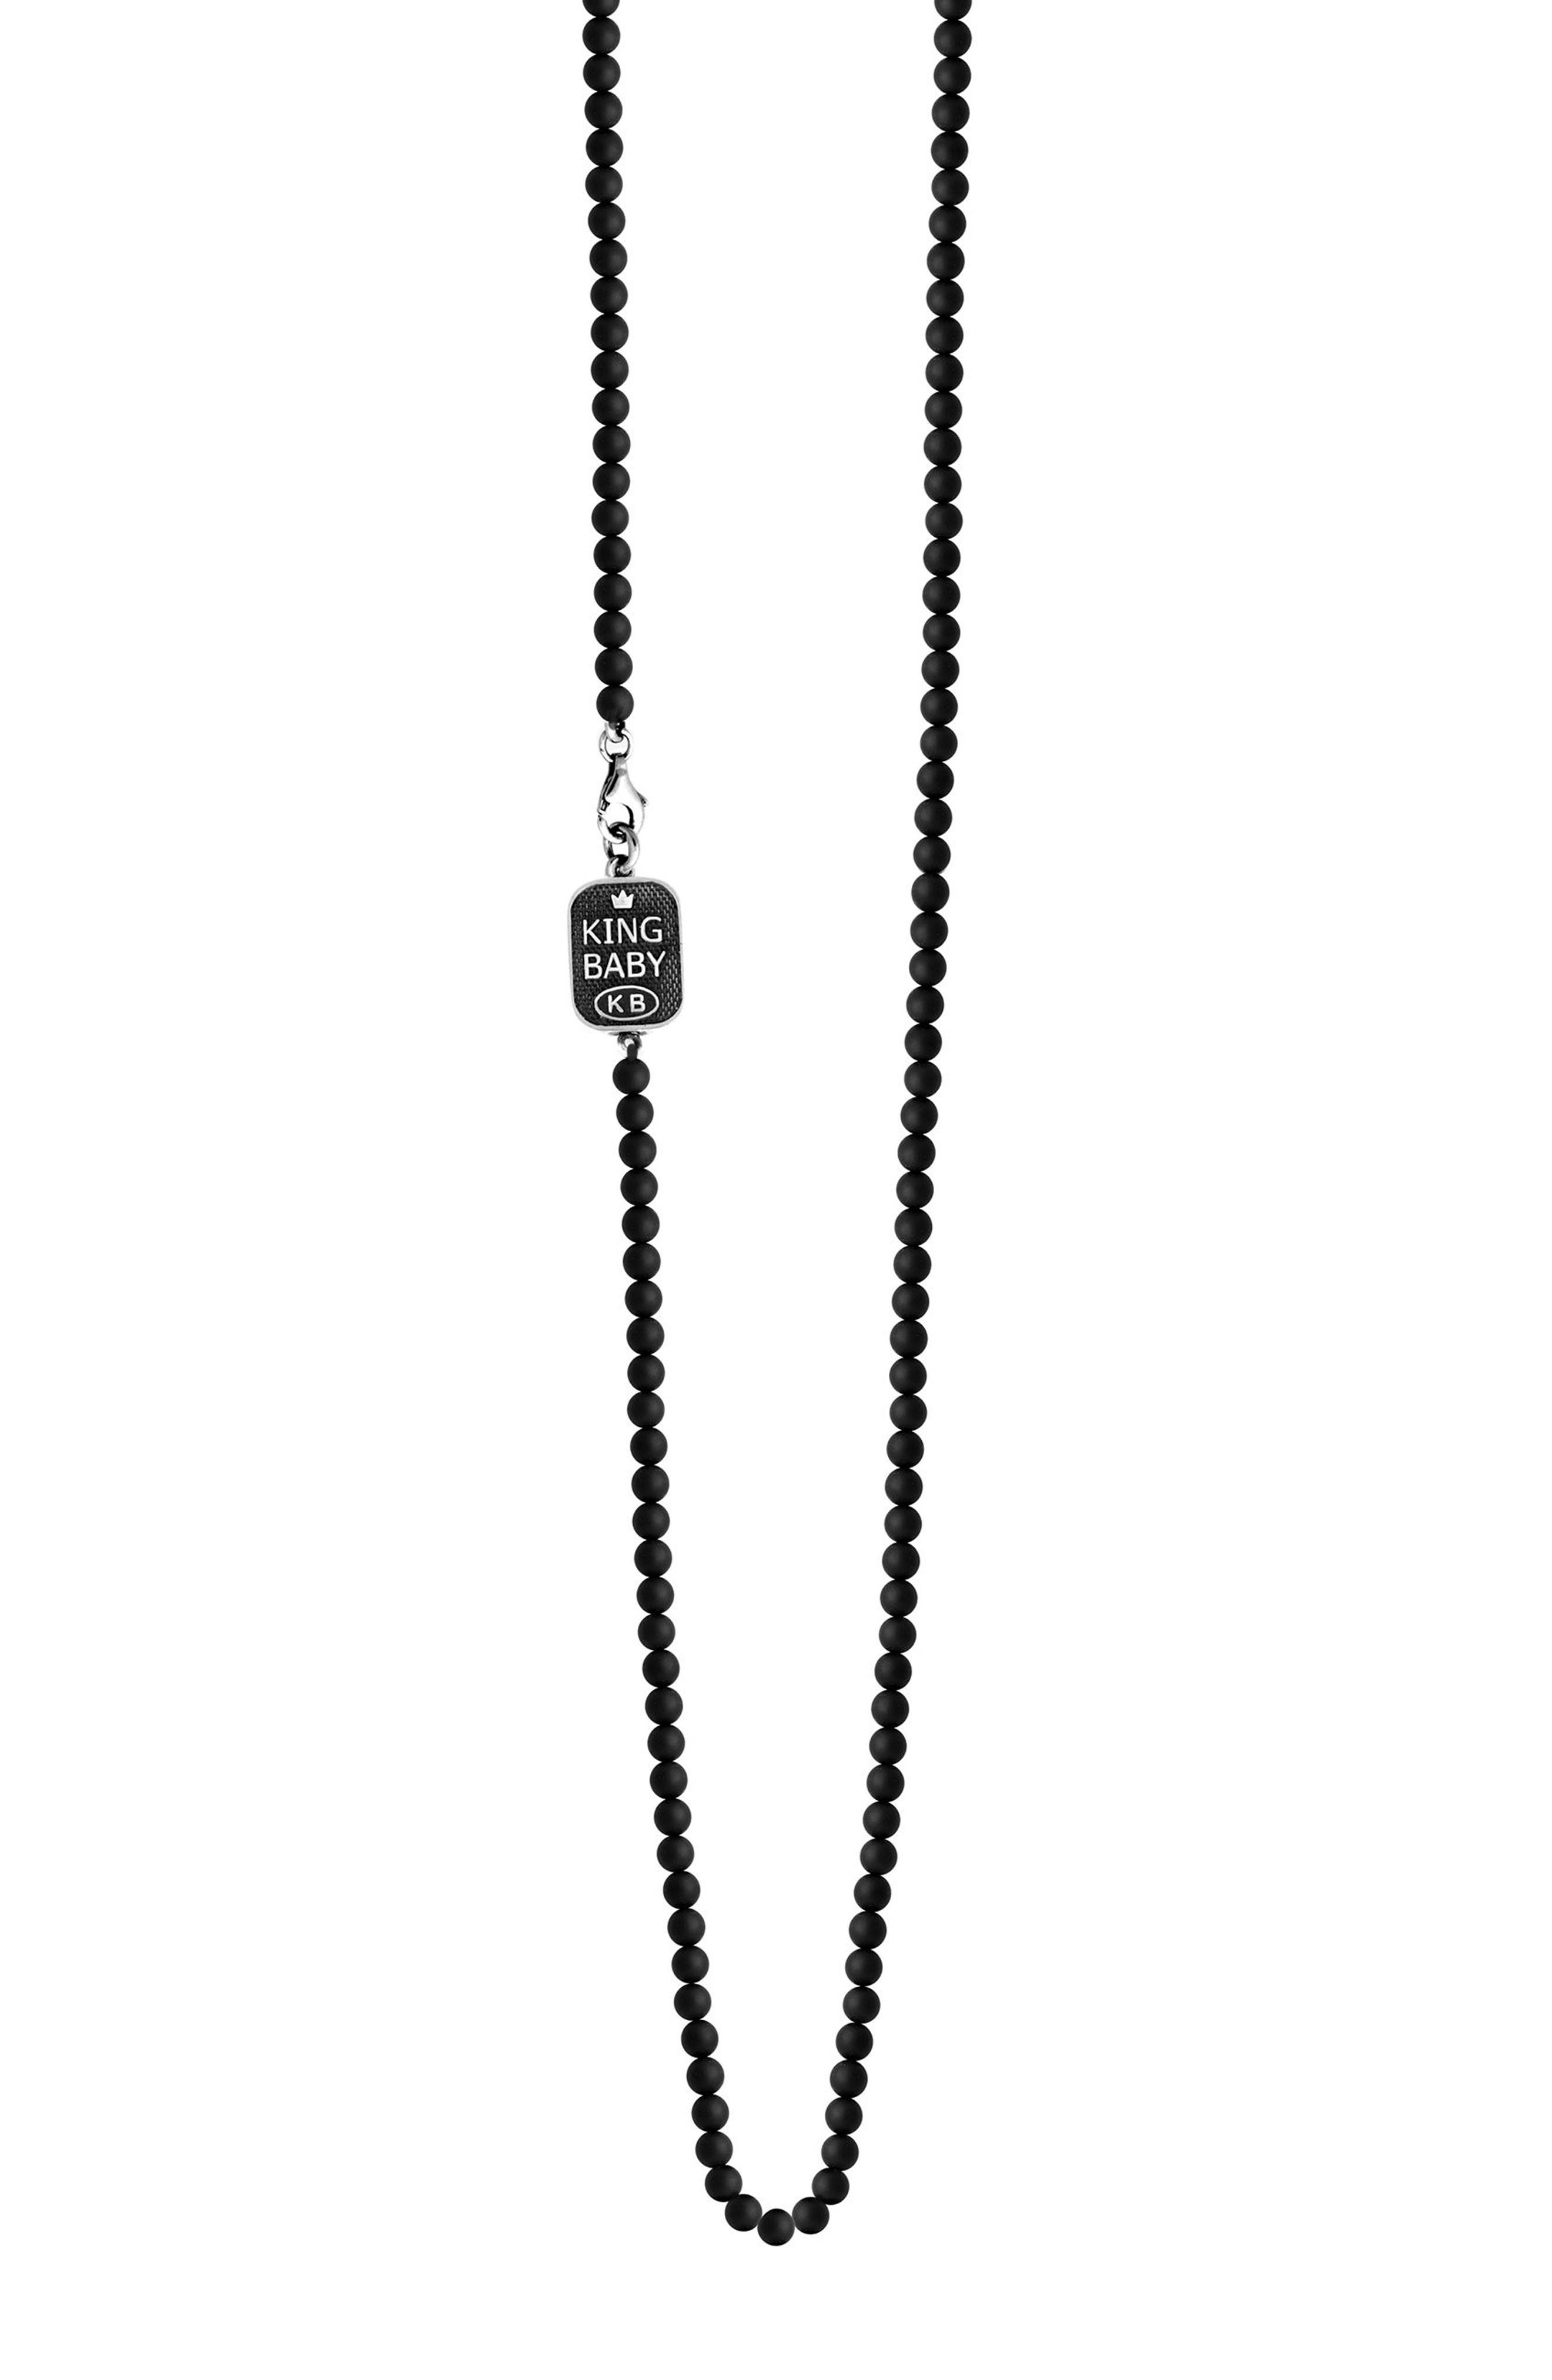 King Baby Onyx Bead Necklace